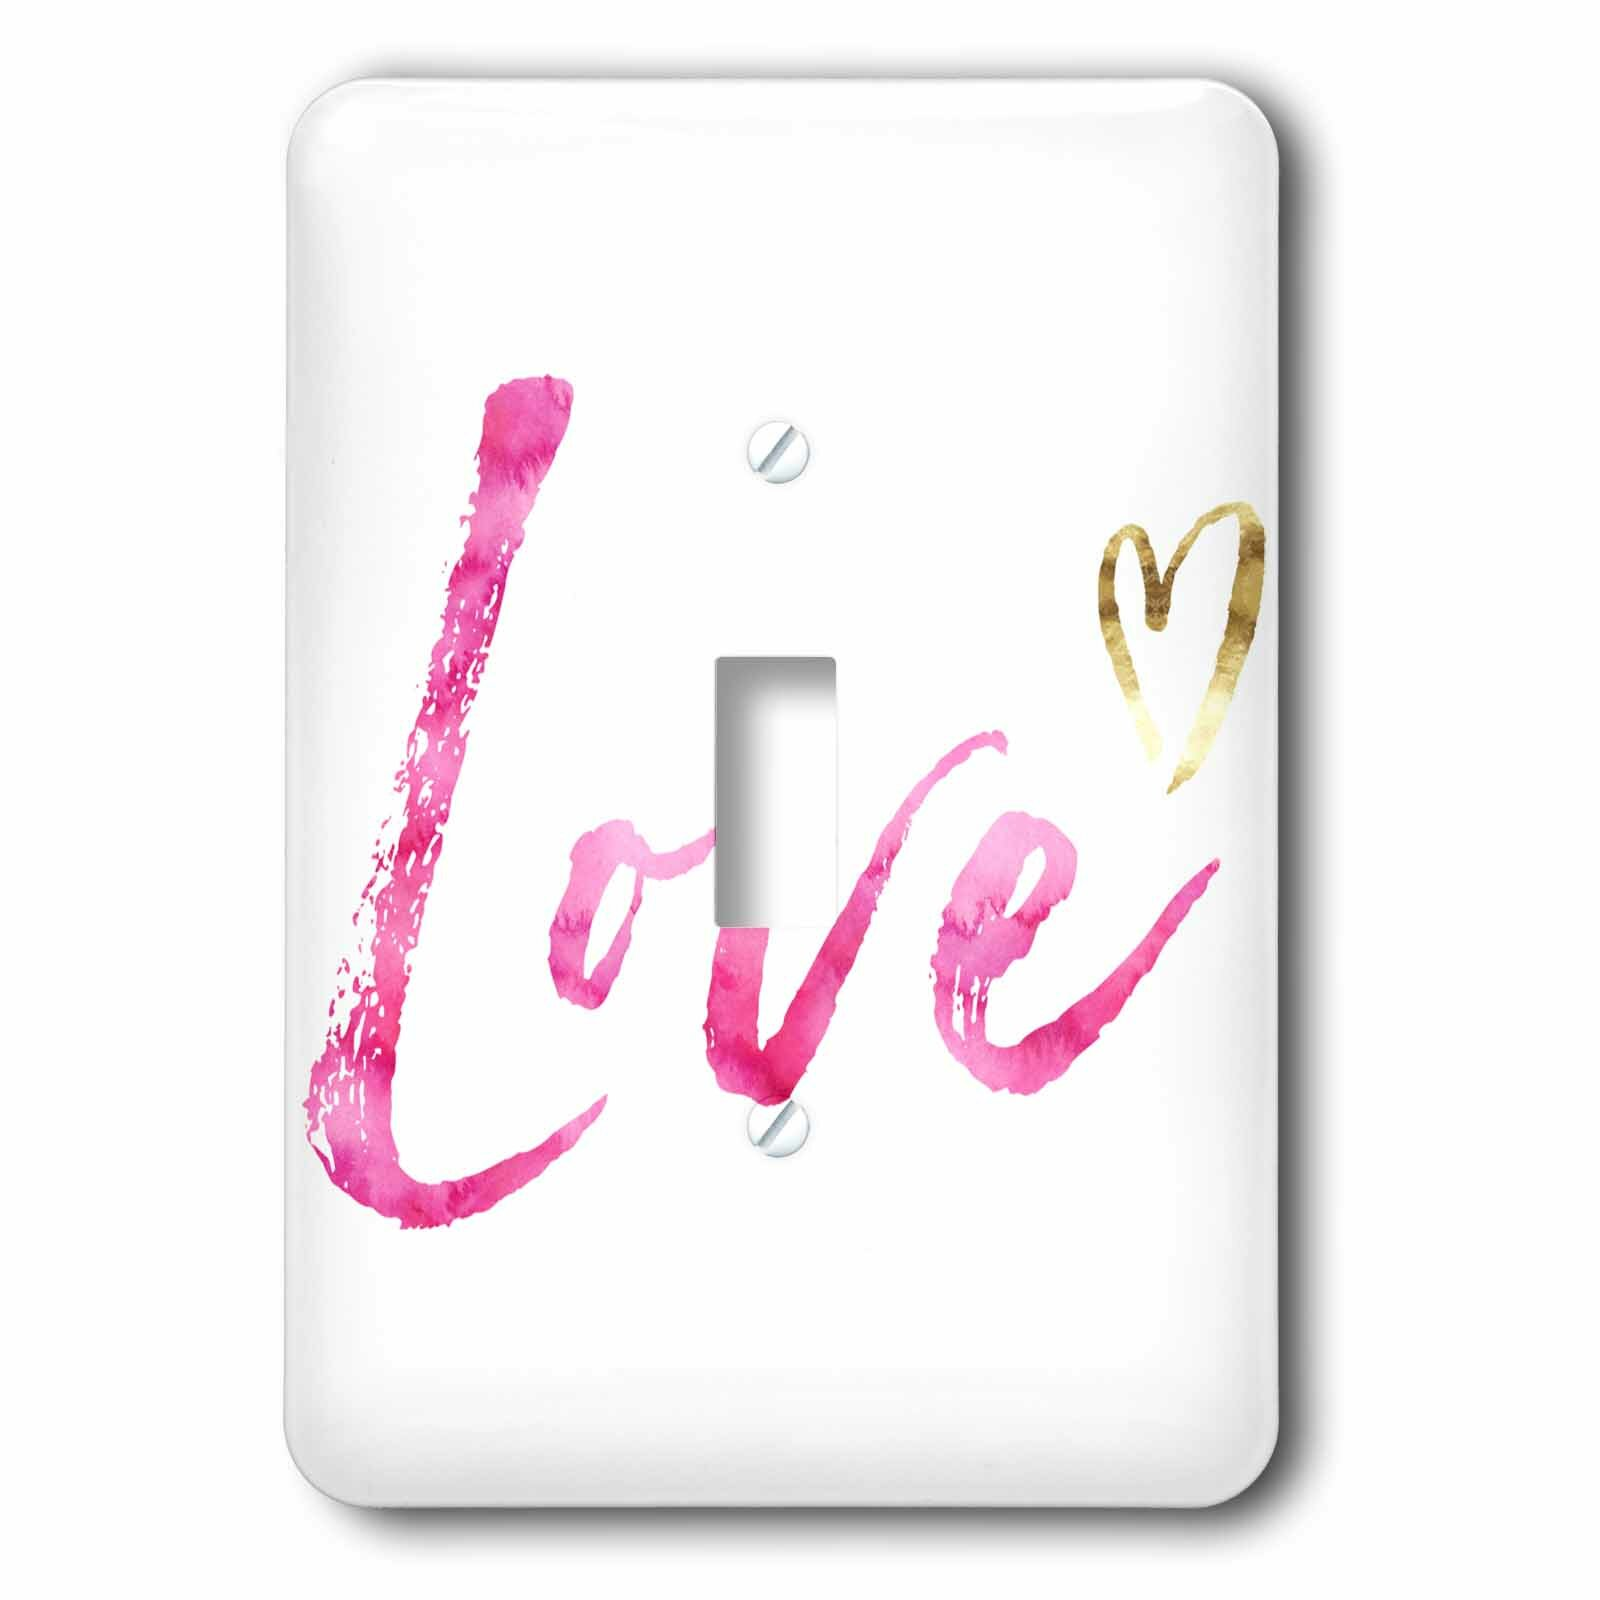 3drose Love With Heart 1 Gang Toggle Light Switch Wall Plate Wayfair